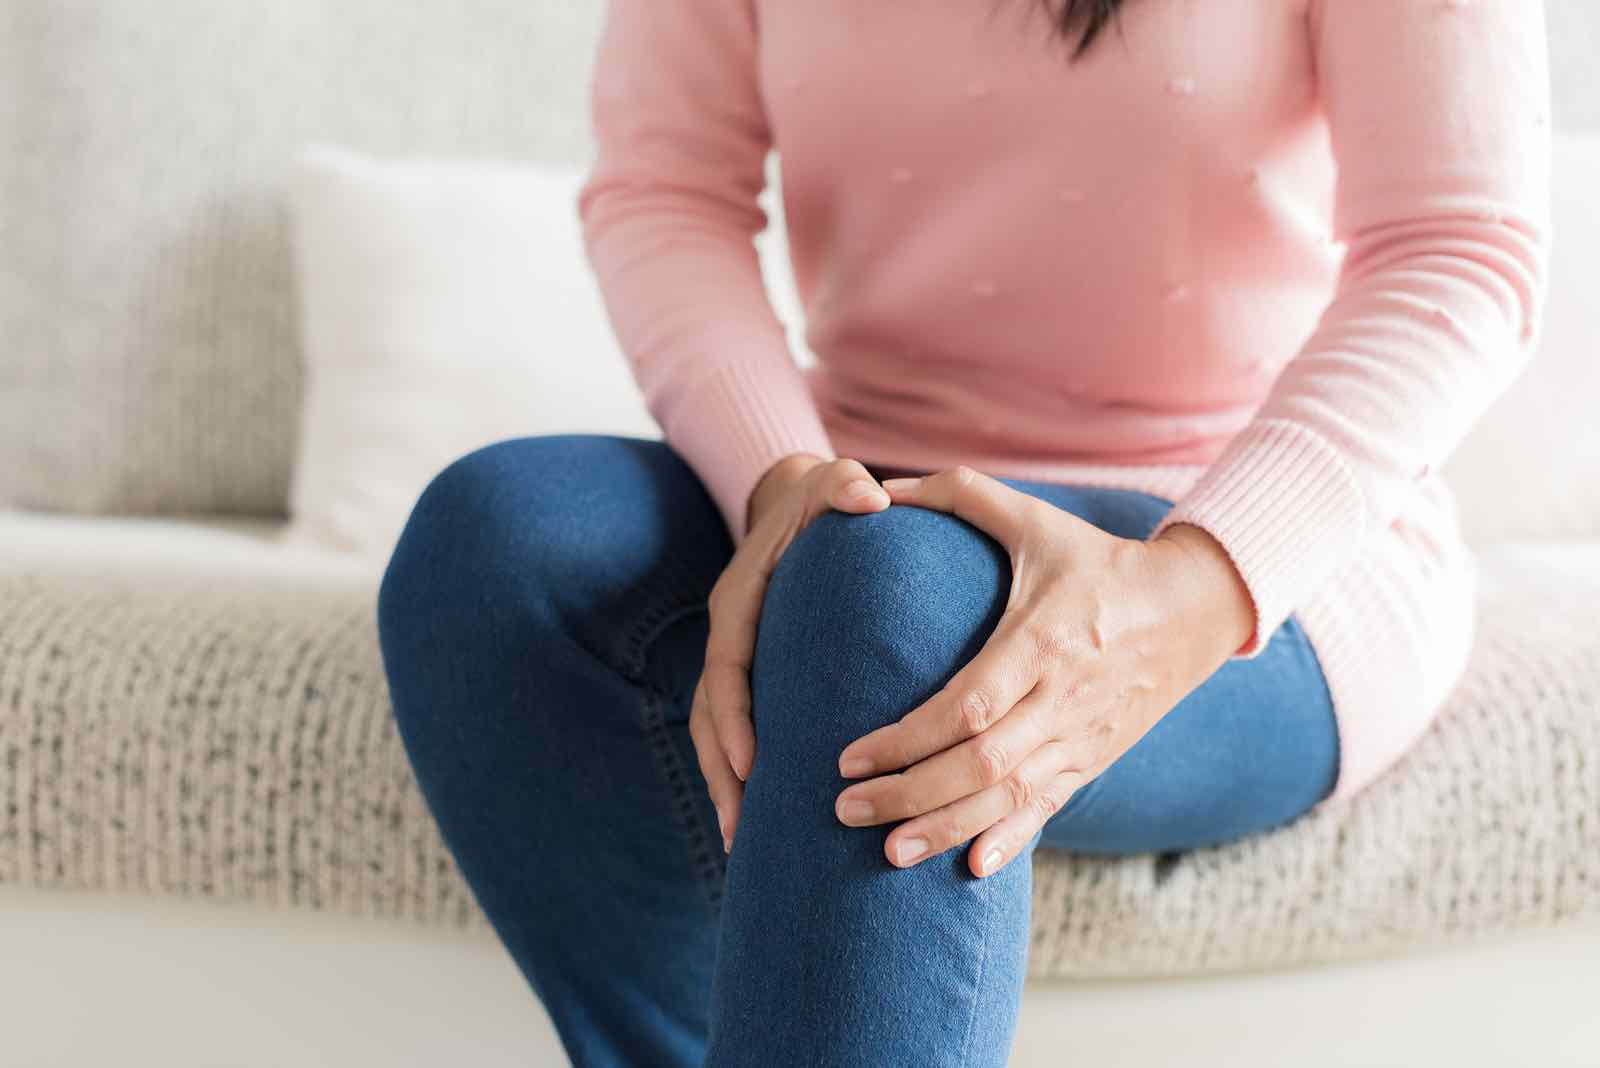 Knee Crepitus - Why do patients have noisy knees?